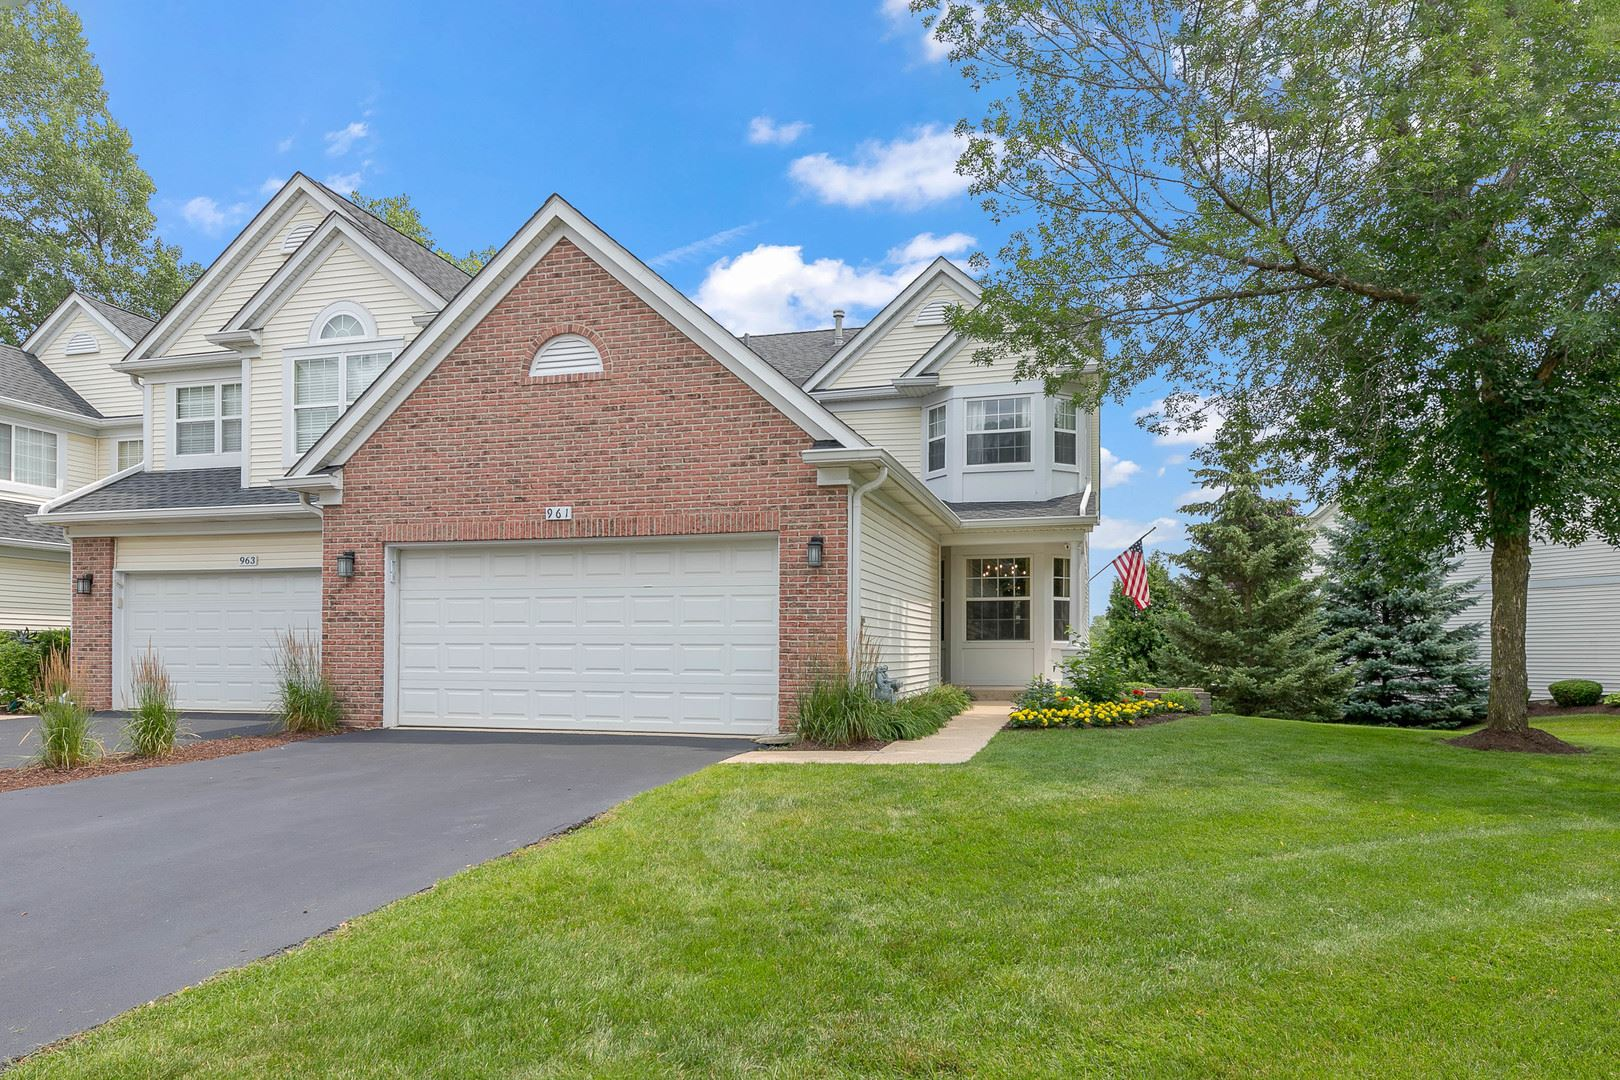 961 Ainsley Drive, West Chicago, IL 60185 - #: 11143519